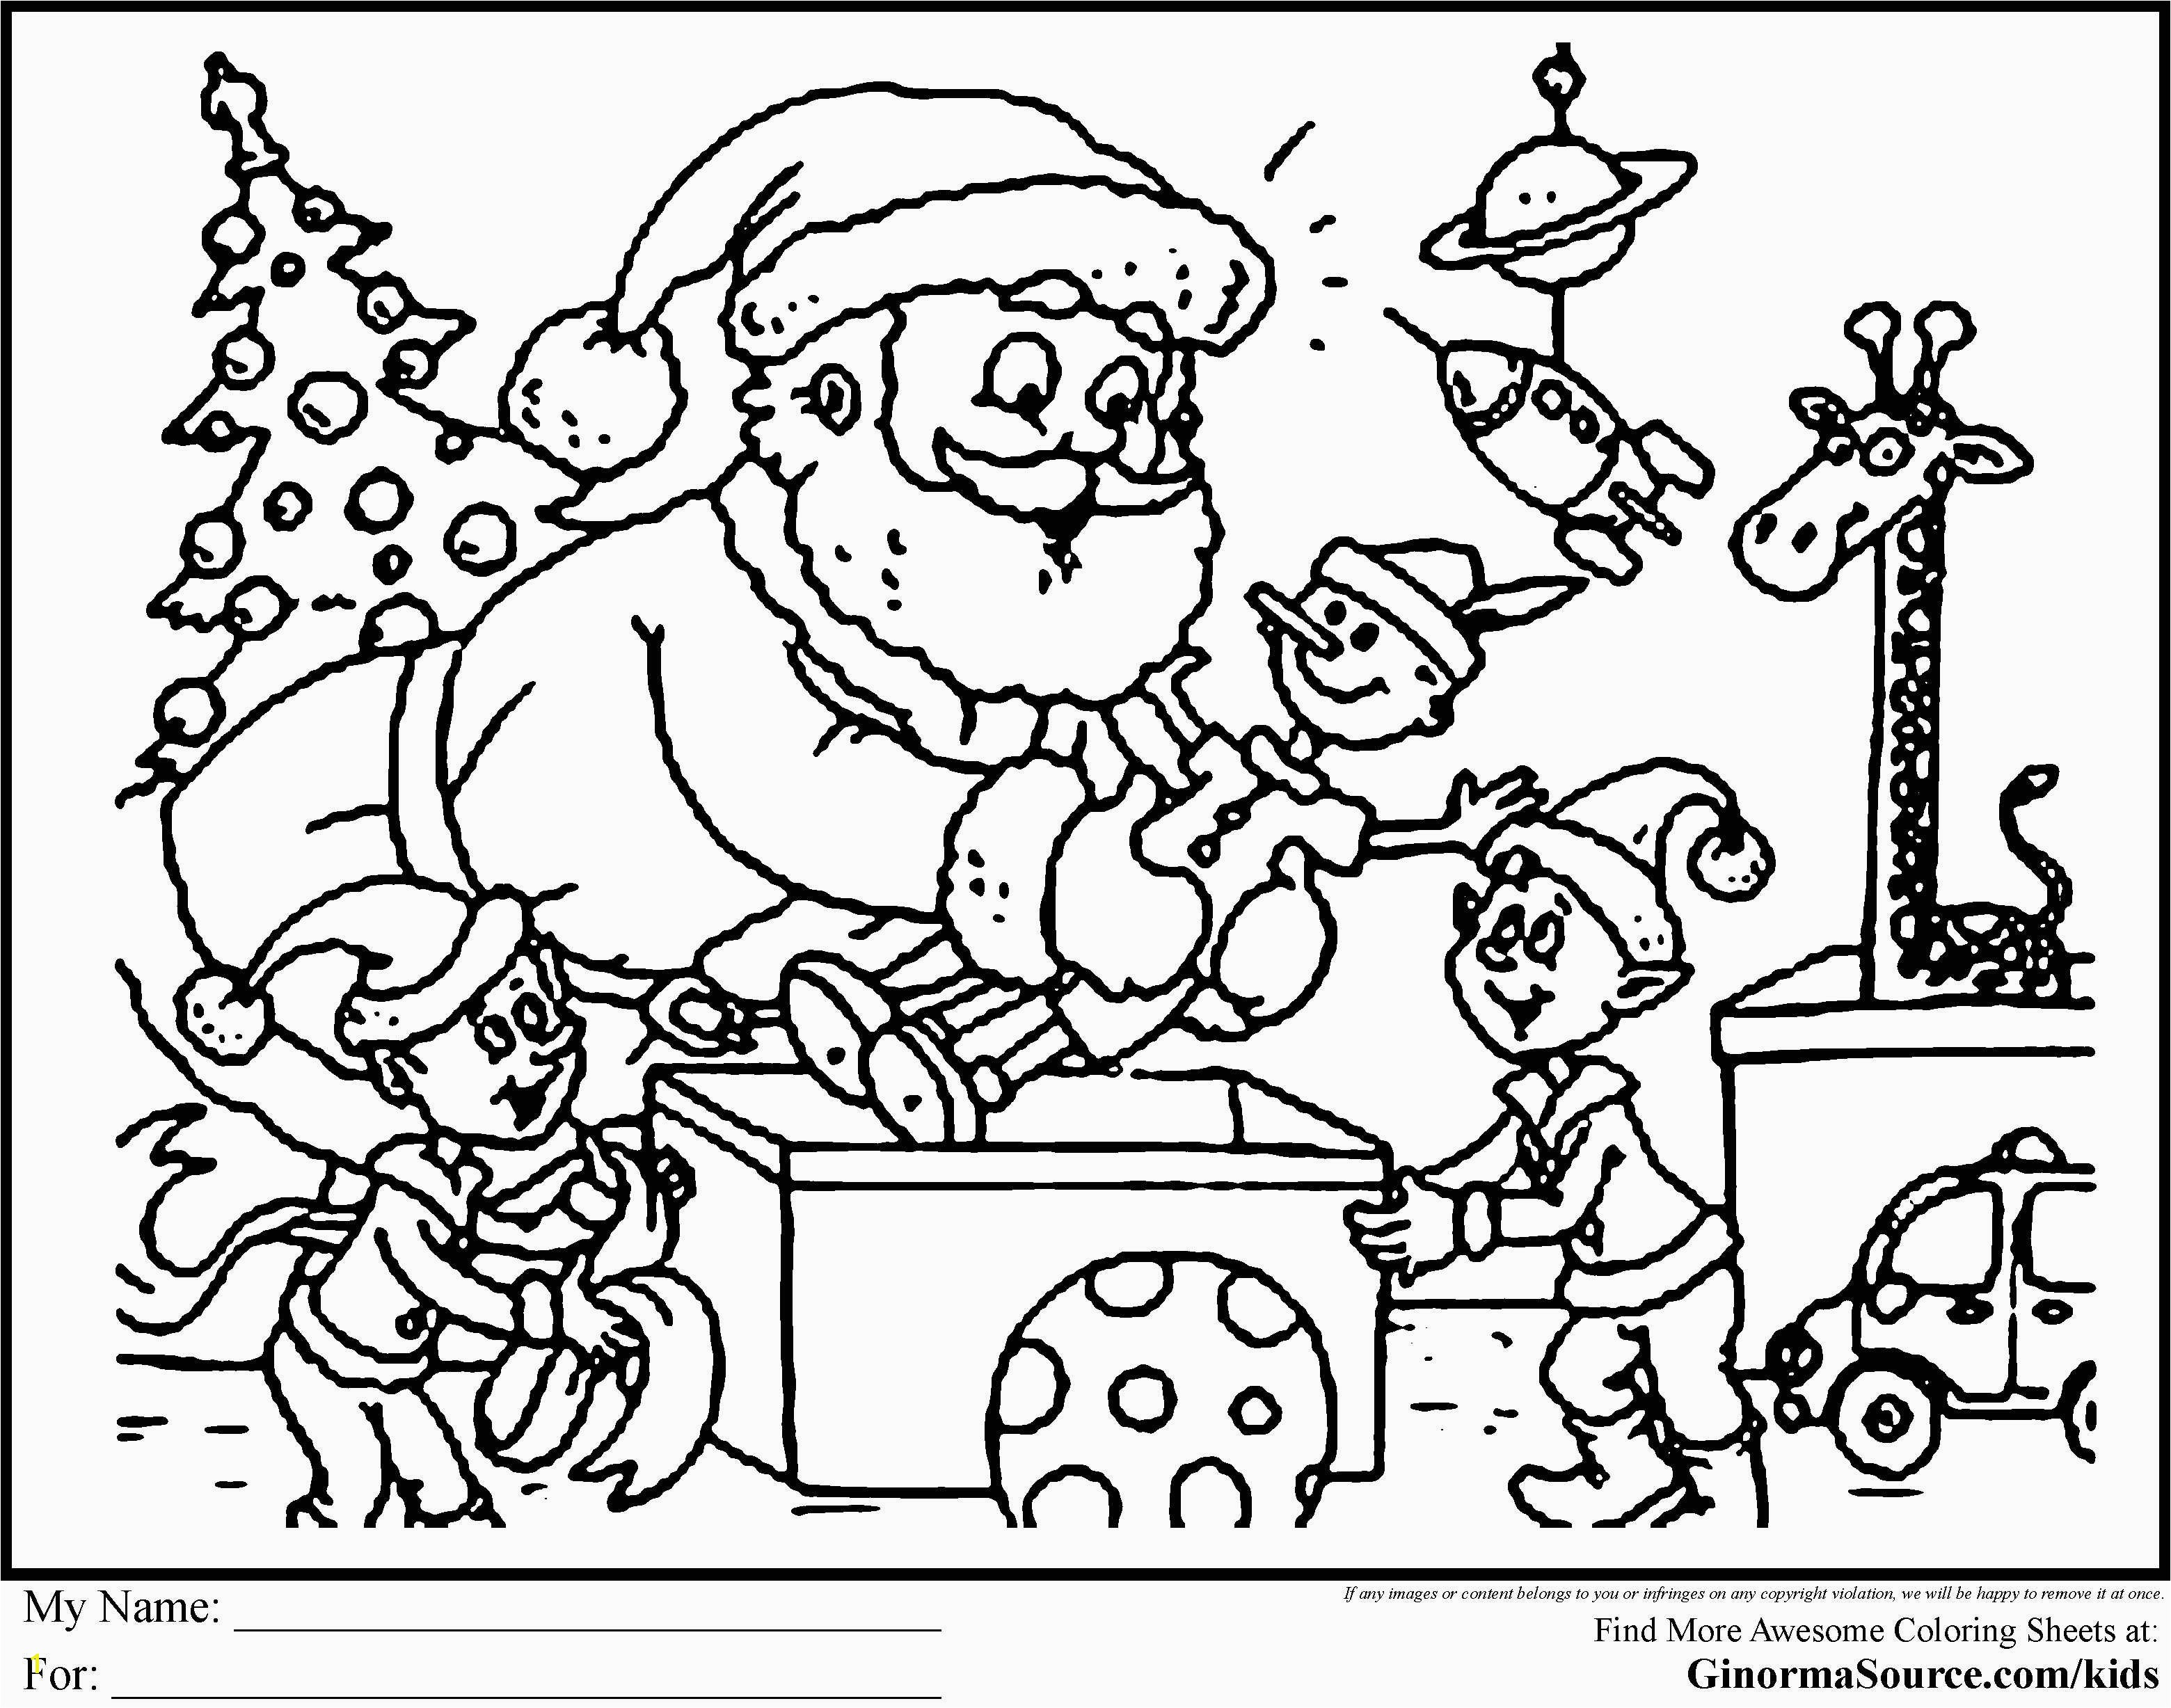 Coloring Pages for Print Inspirational Printable Cds 0d Coloring Page Luxury Coloring Pages for Christmas